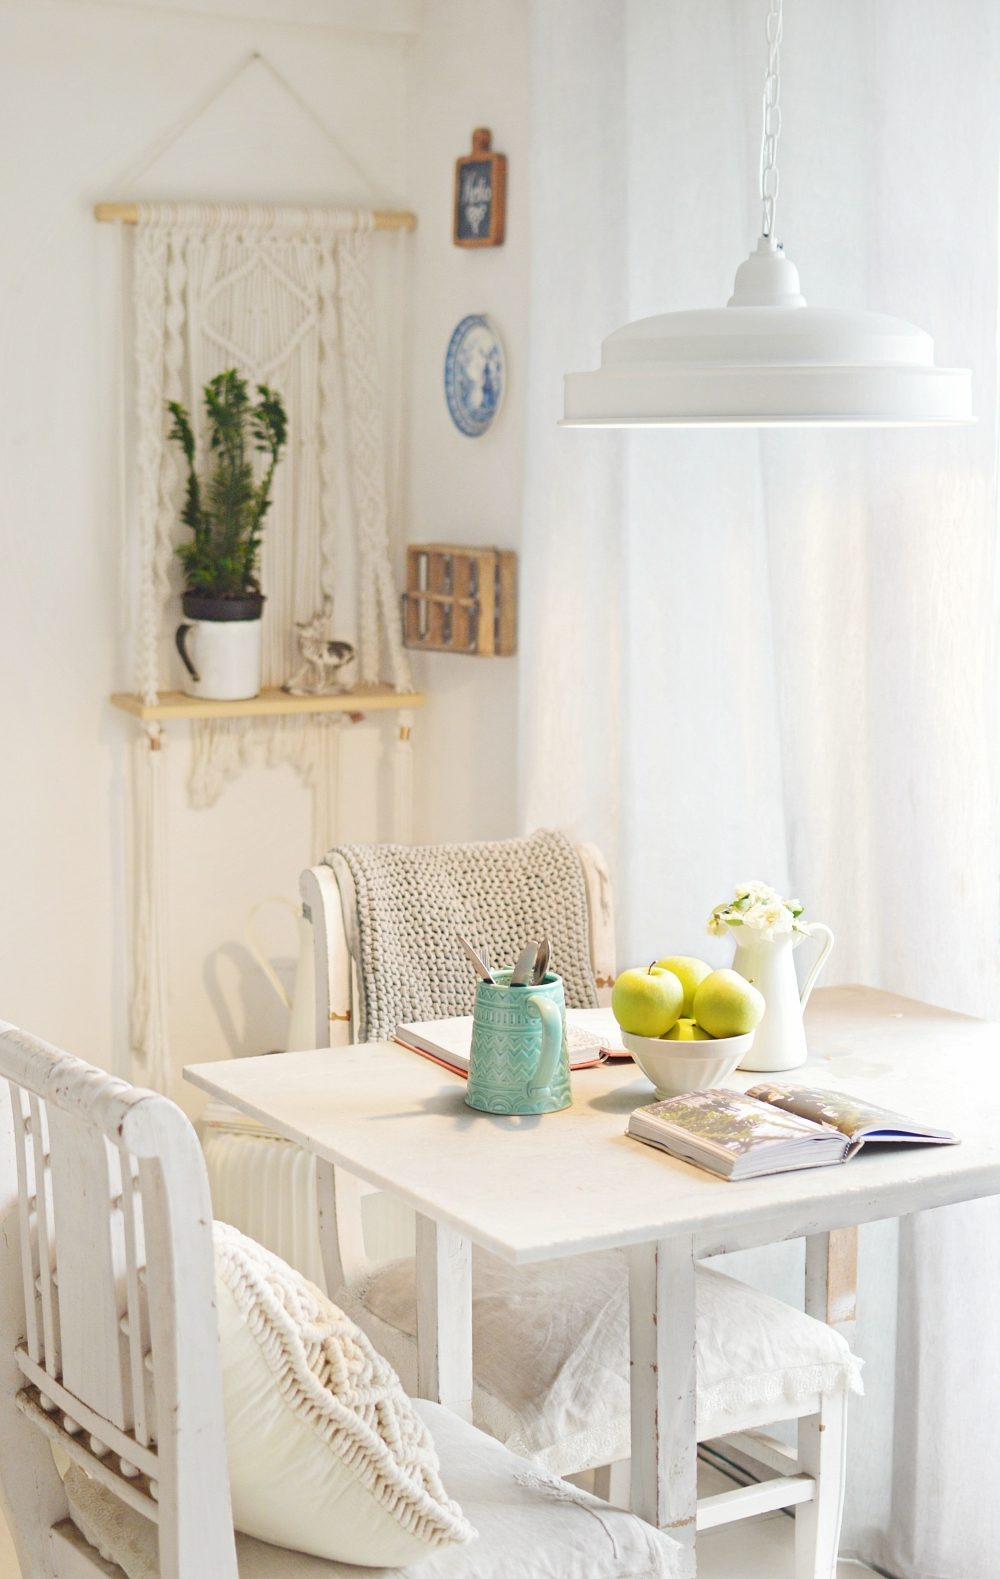 Dining Room Ideas For Your Small Apartment That Are Functional And Looks Gorgeous